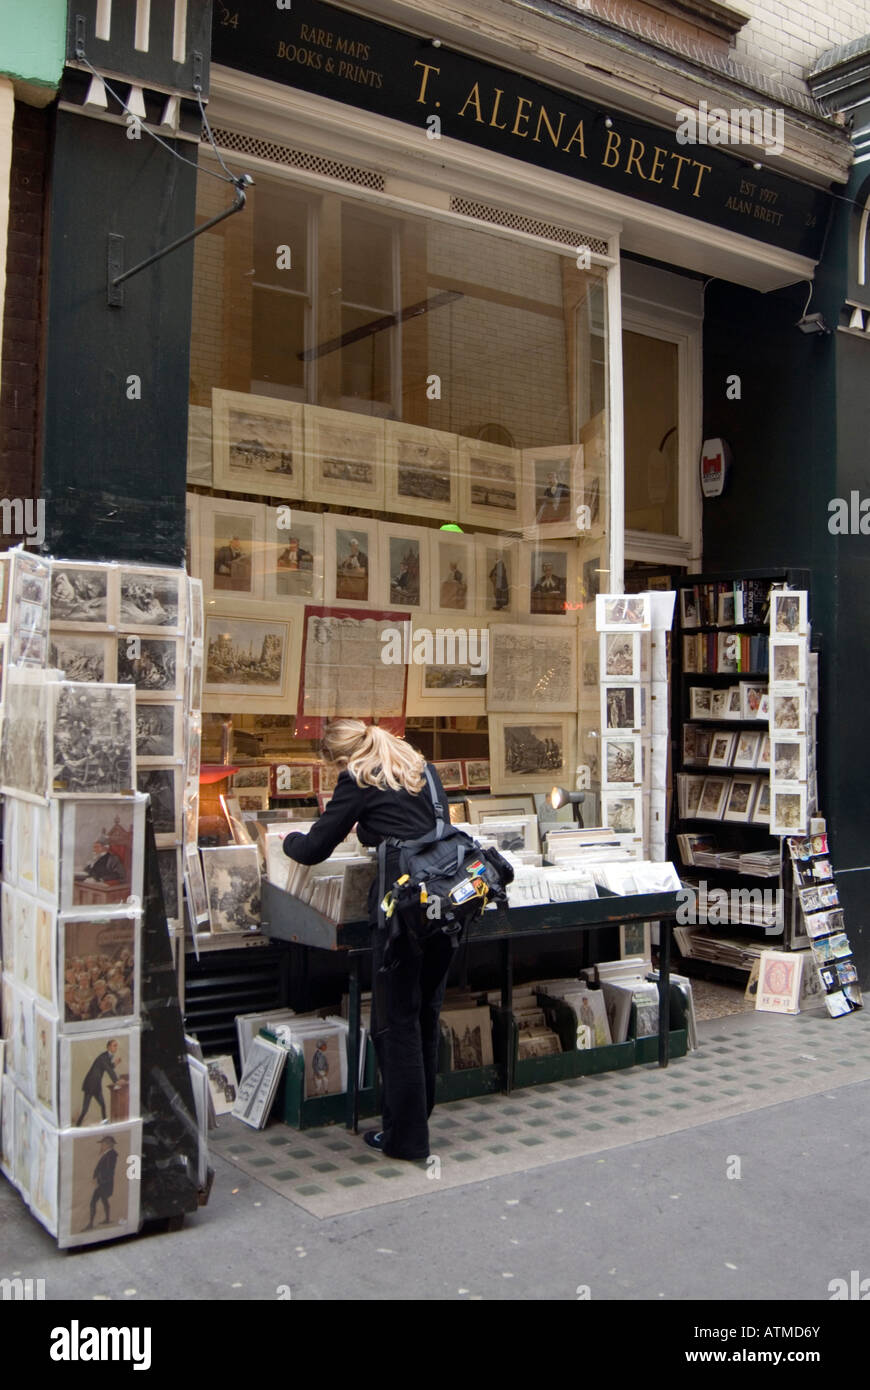 Rare and antiquarian posters and cards in Cecil Court, London England UK - Stock Image